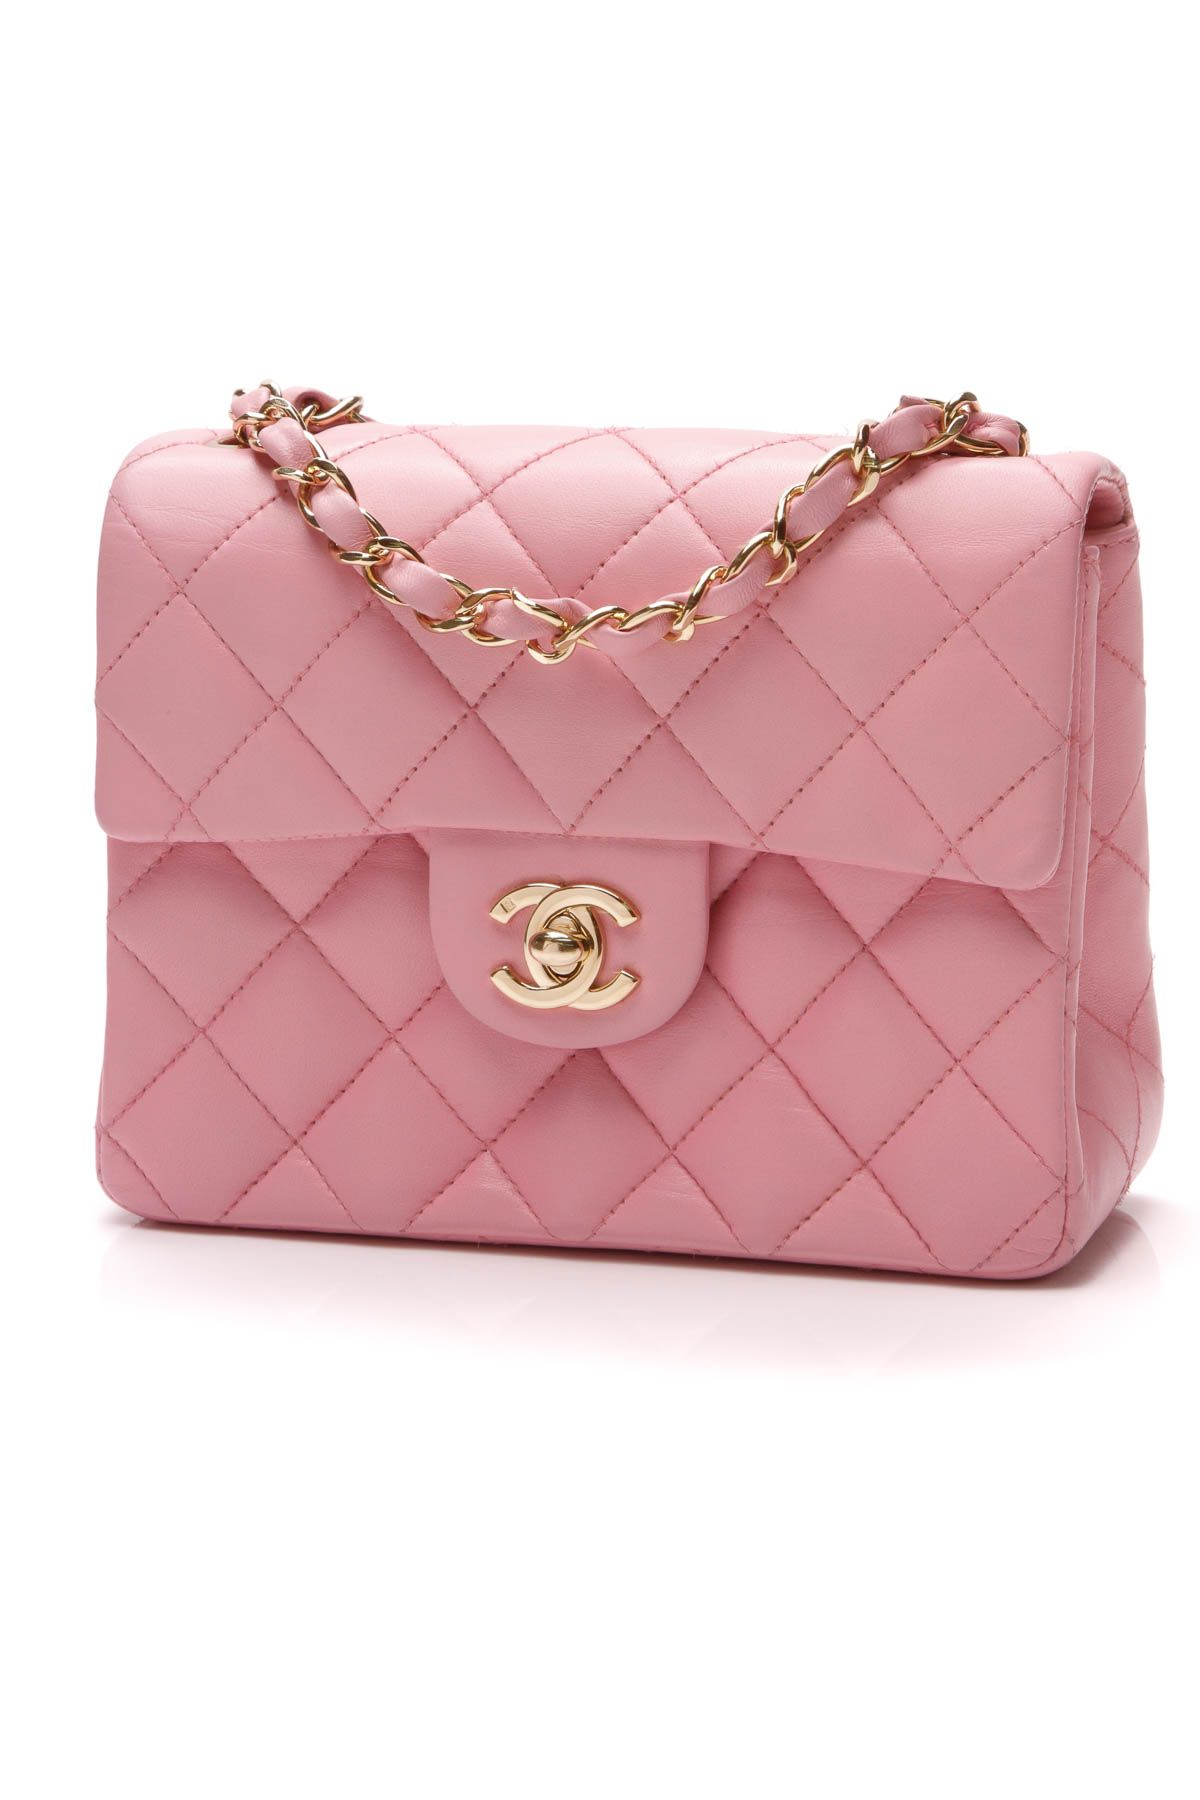 0b7cc520a8fd Chanel Classic Flap Bag - Mini Pink Lambskin | Crazy for Coco ...